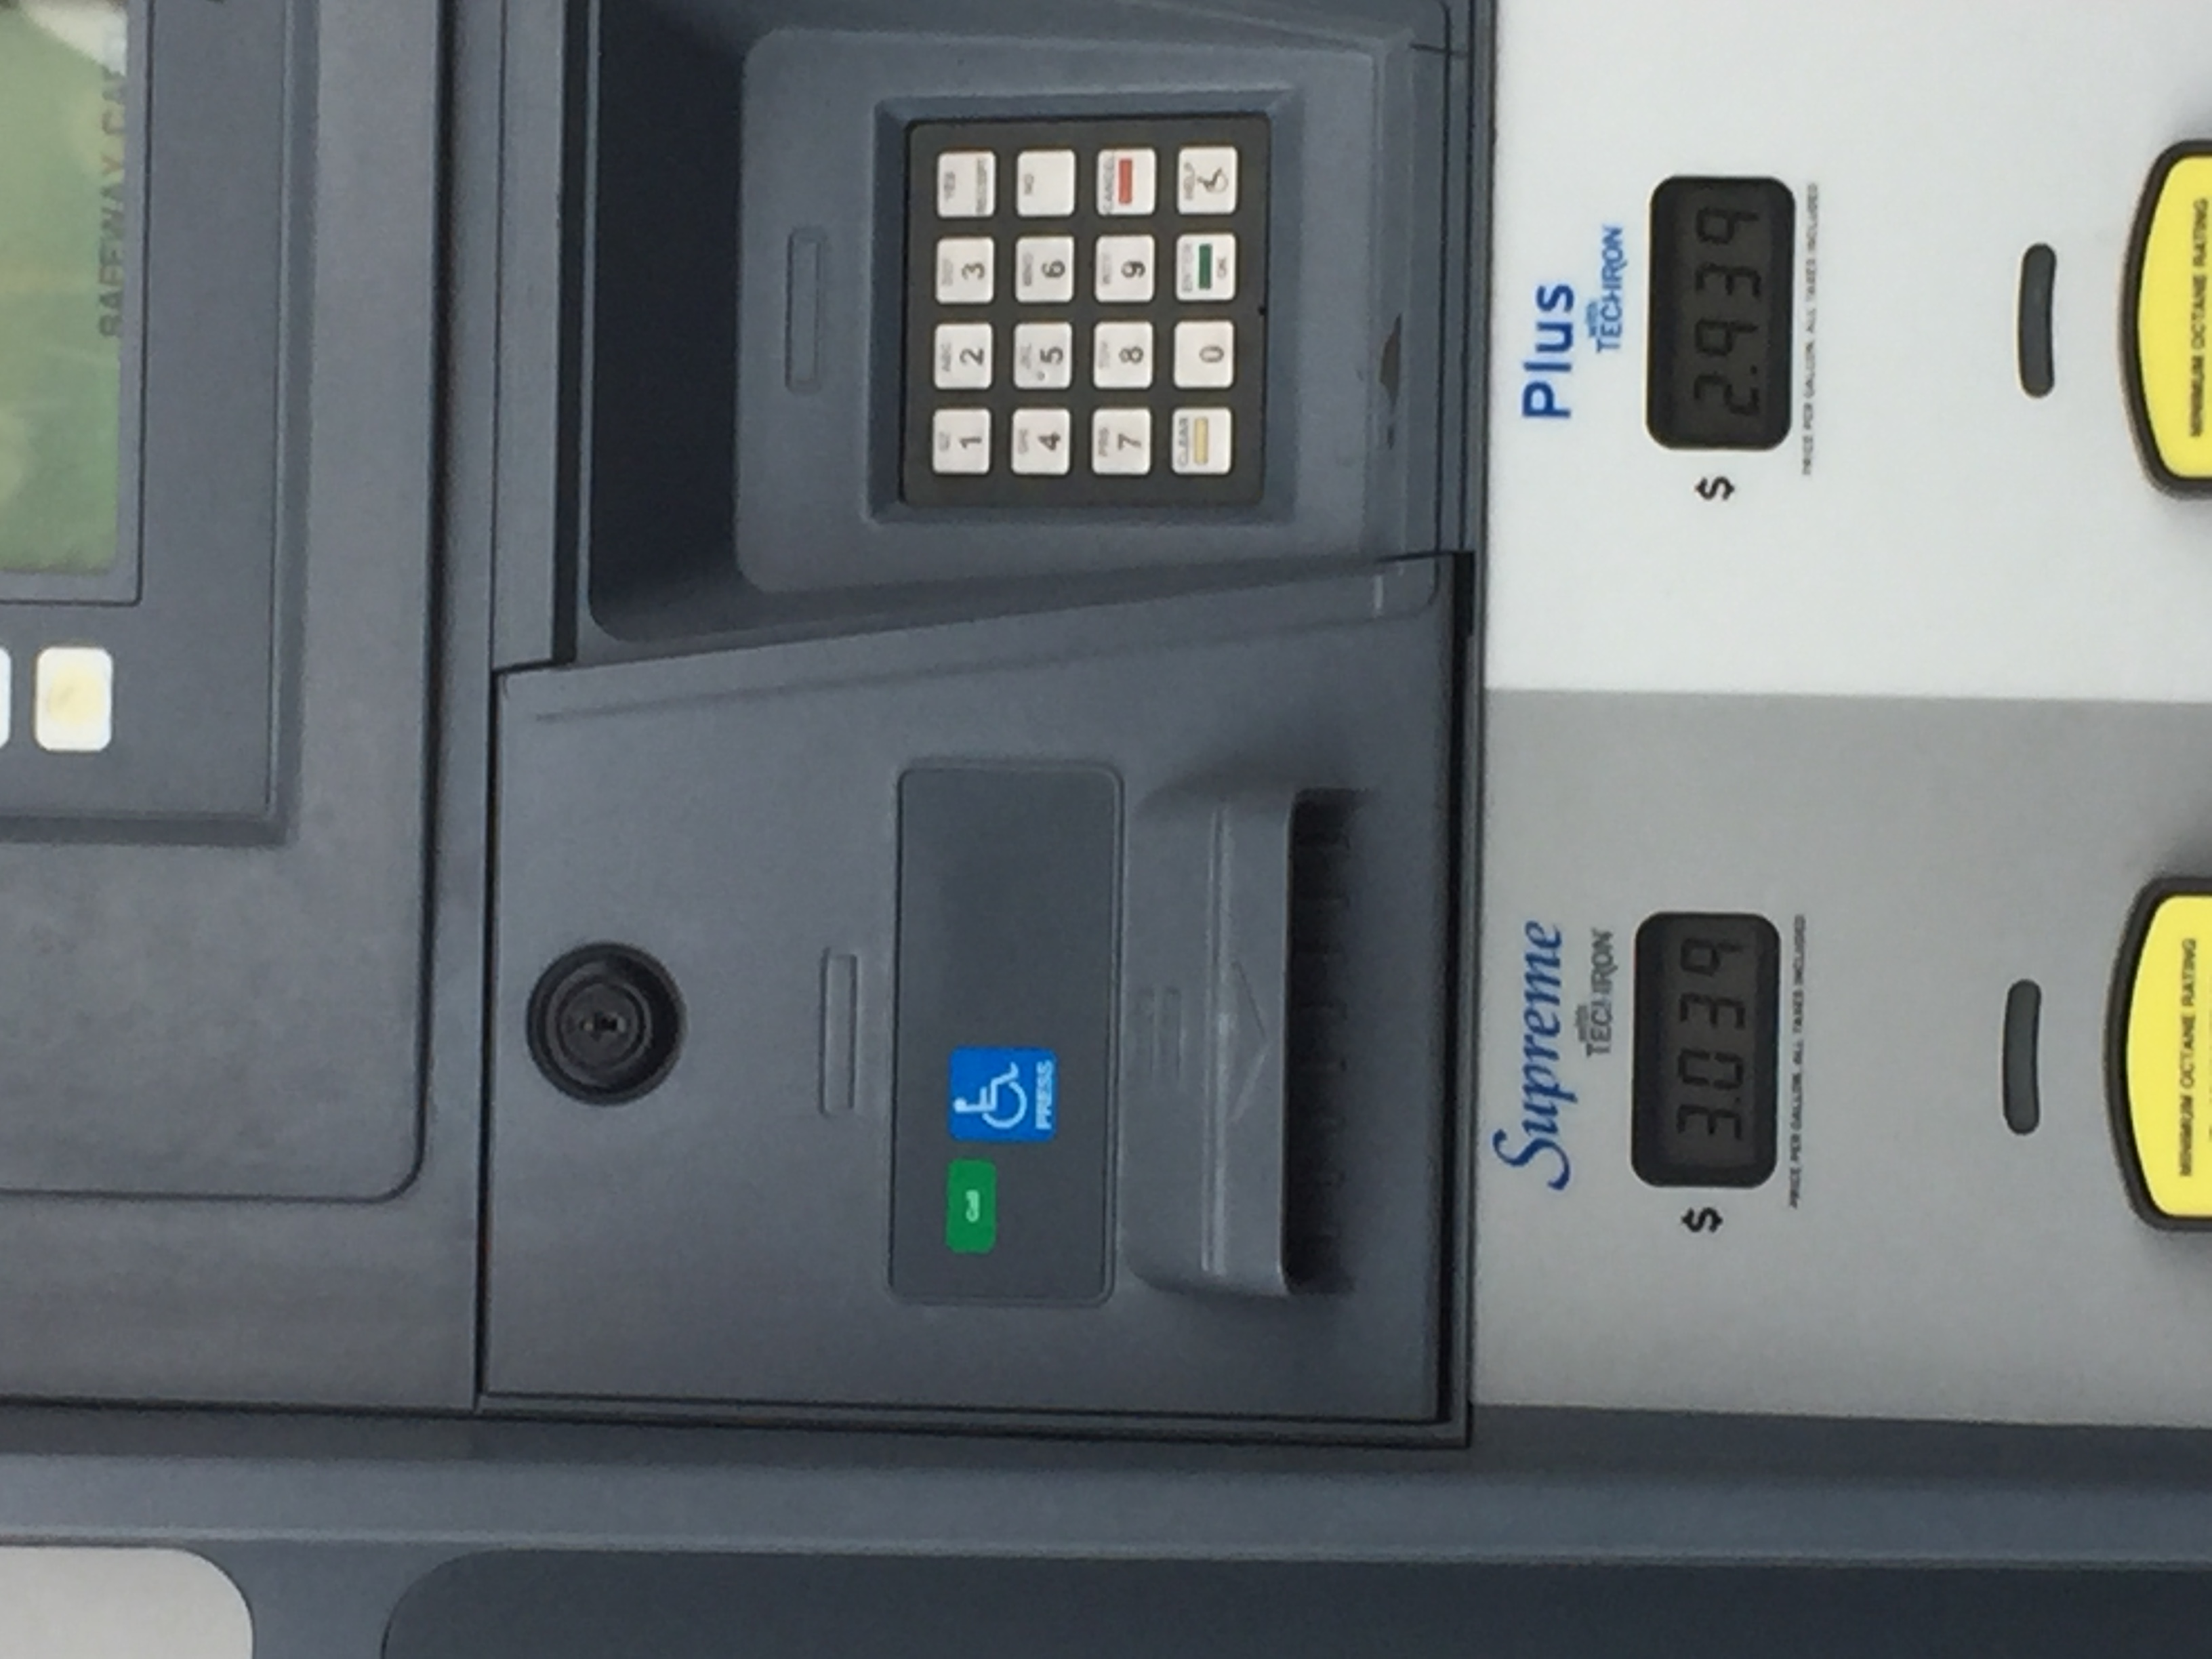 Pumps have call button and staff will come out to fuel car for you.